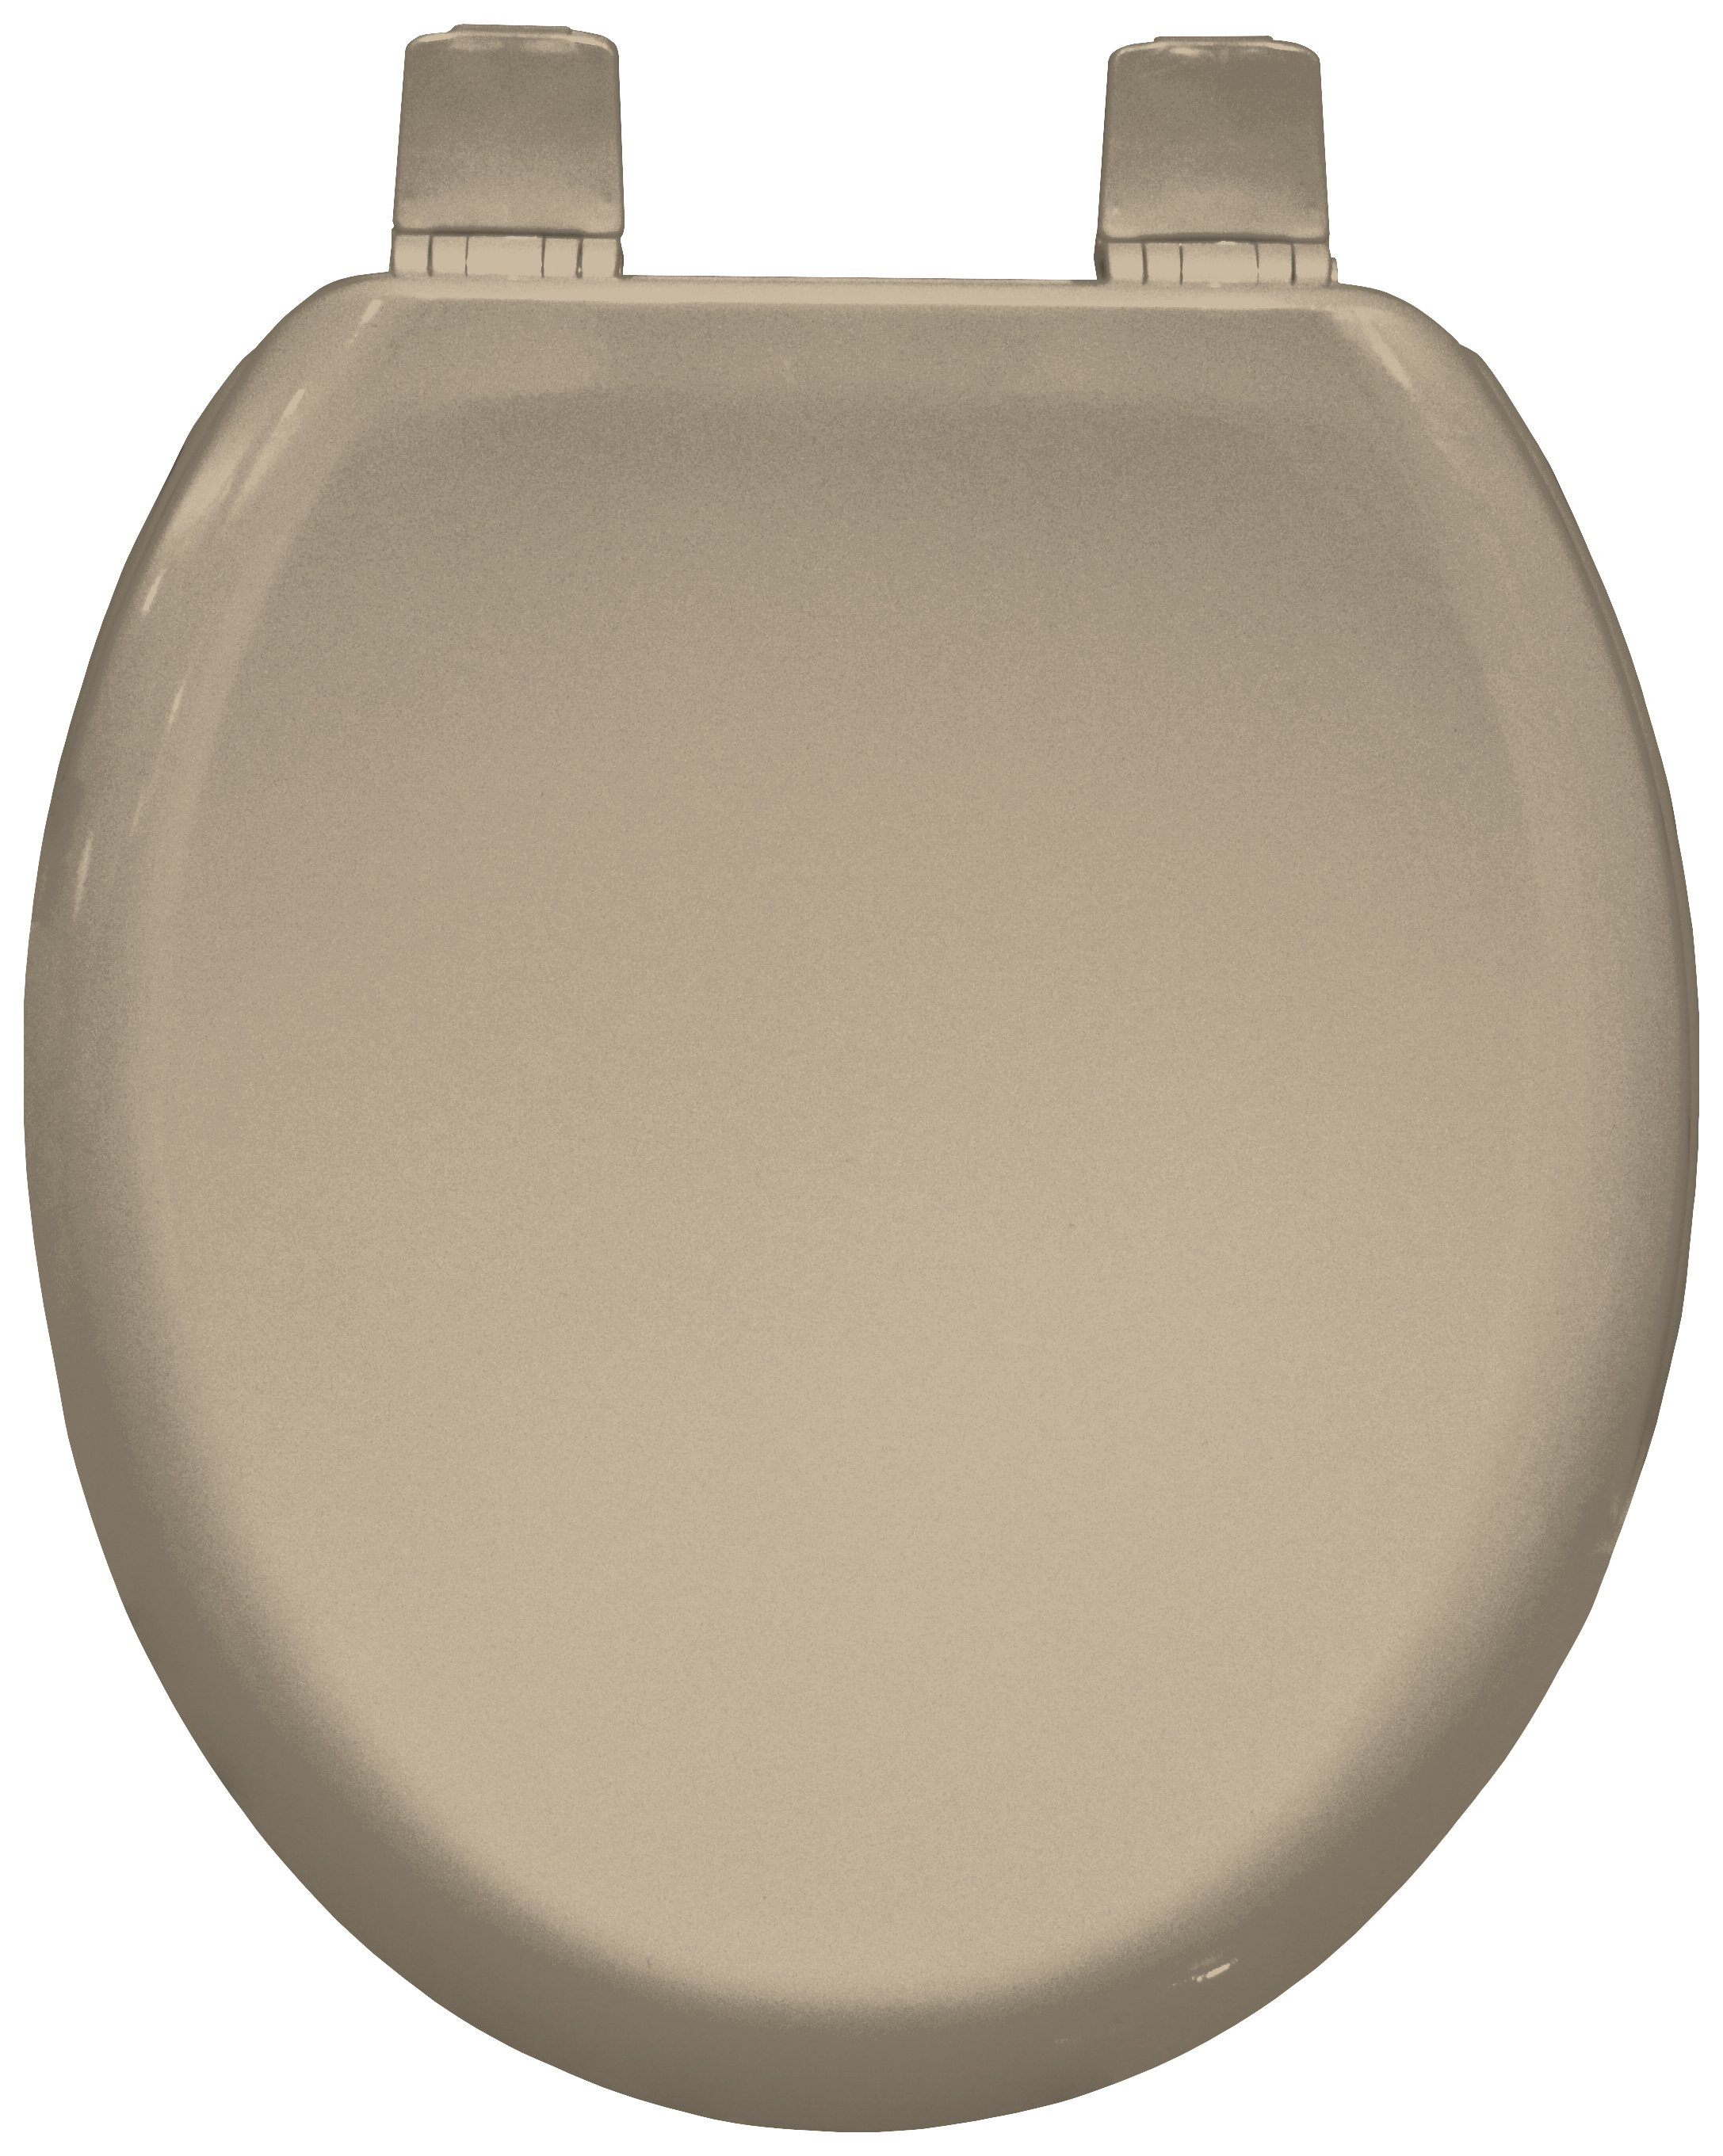 buy bemis chicago statite toilet seat indian ivory at argoscouk your online shop for toilet seats bathroom accessories home furnishings